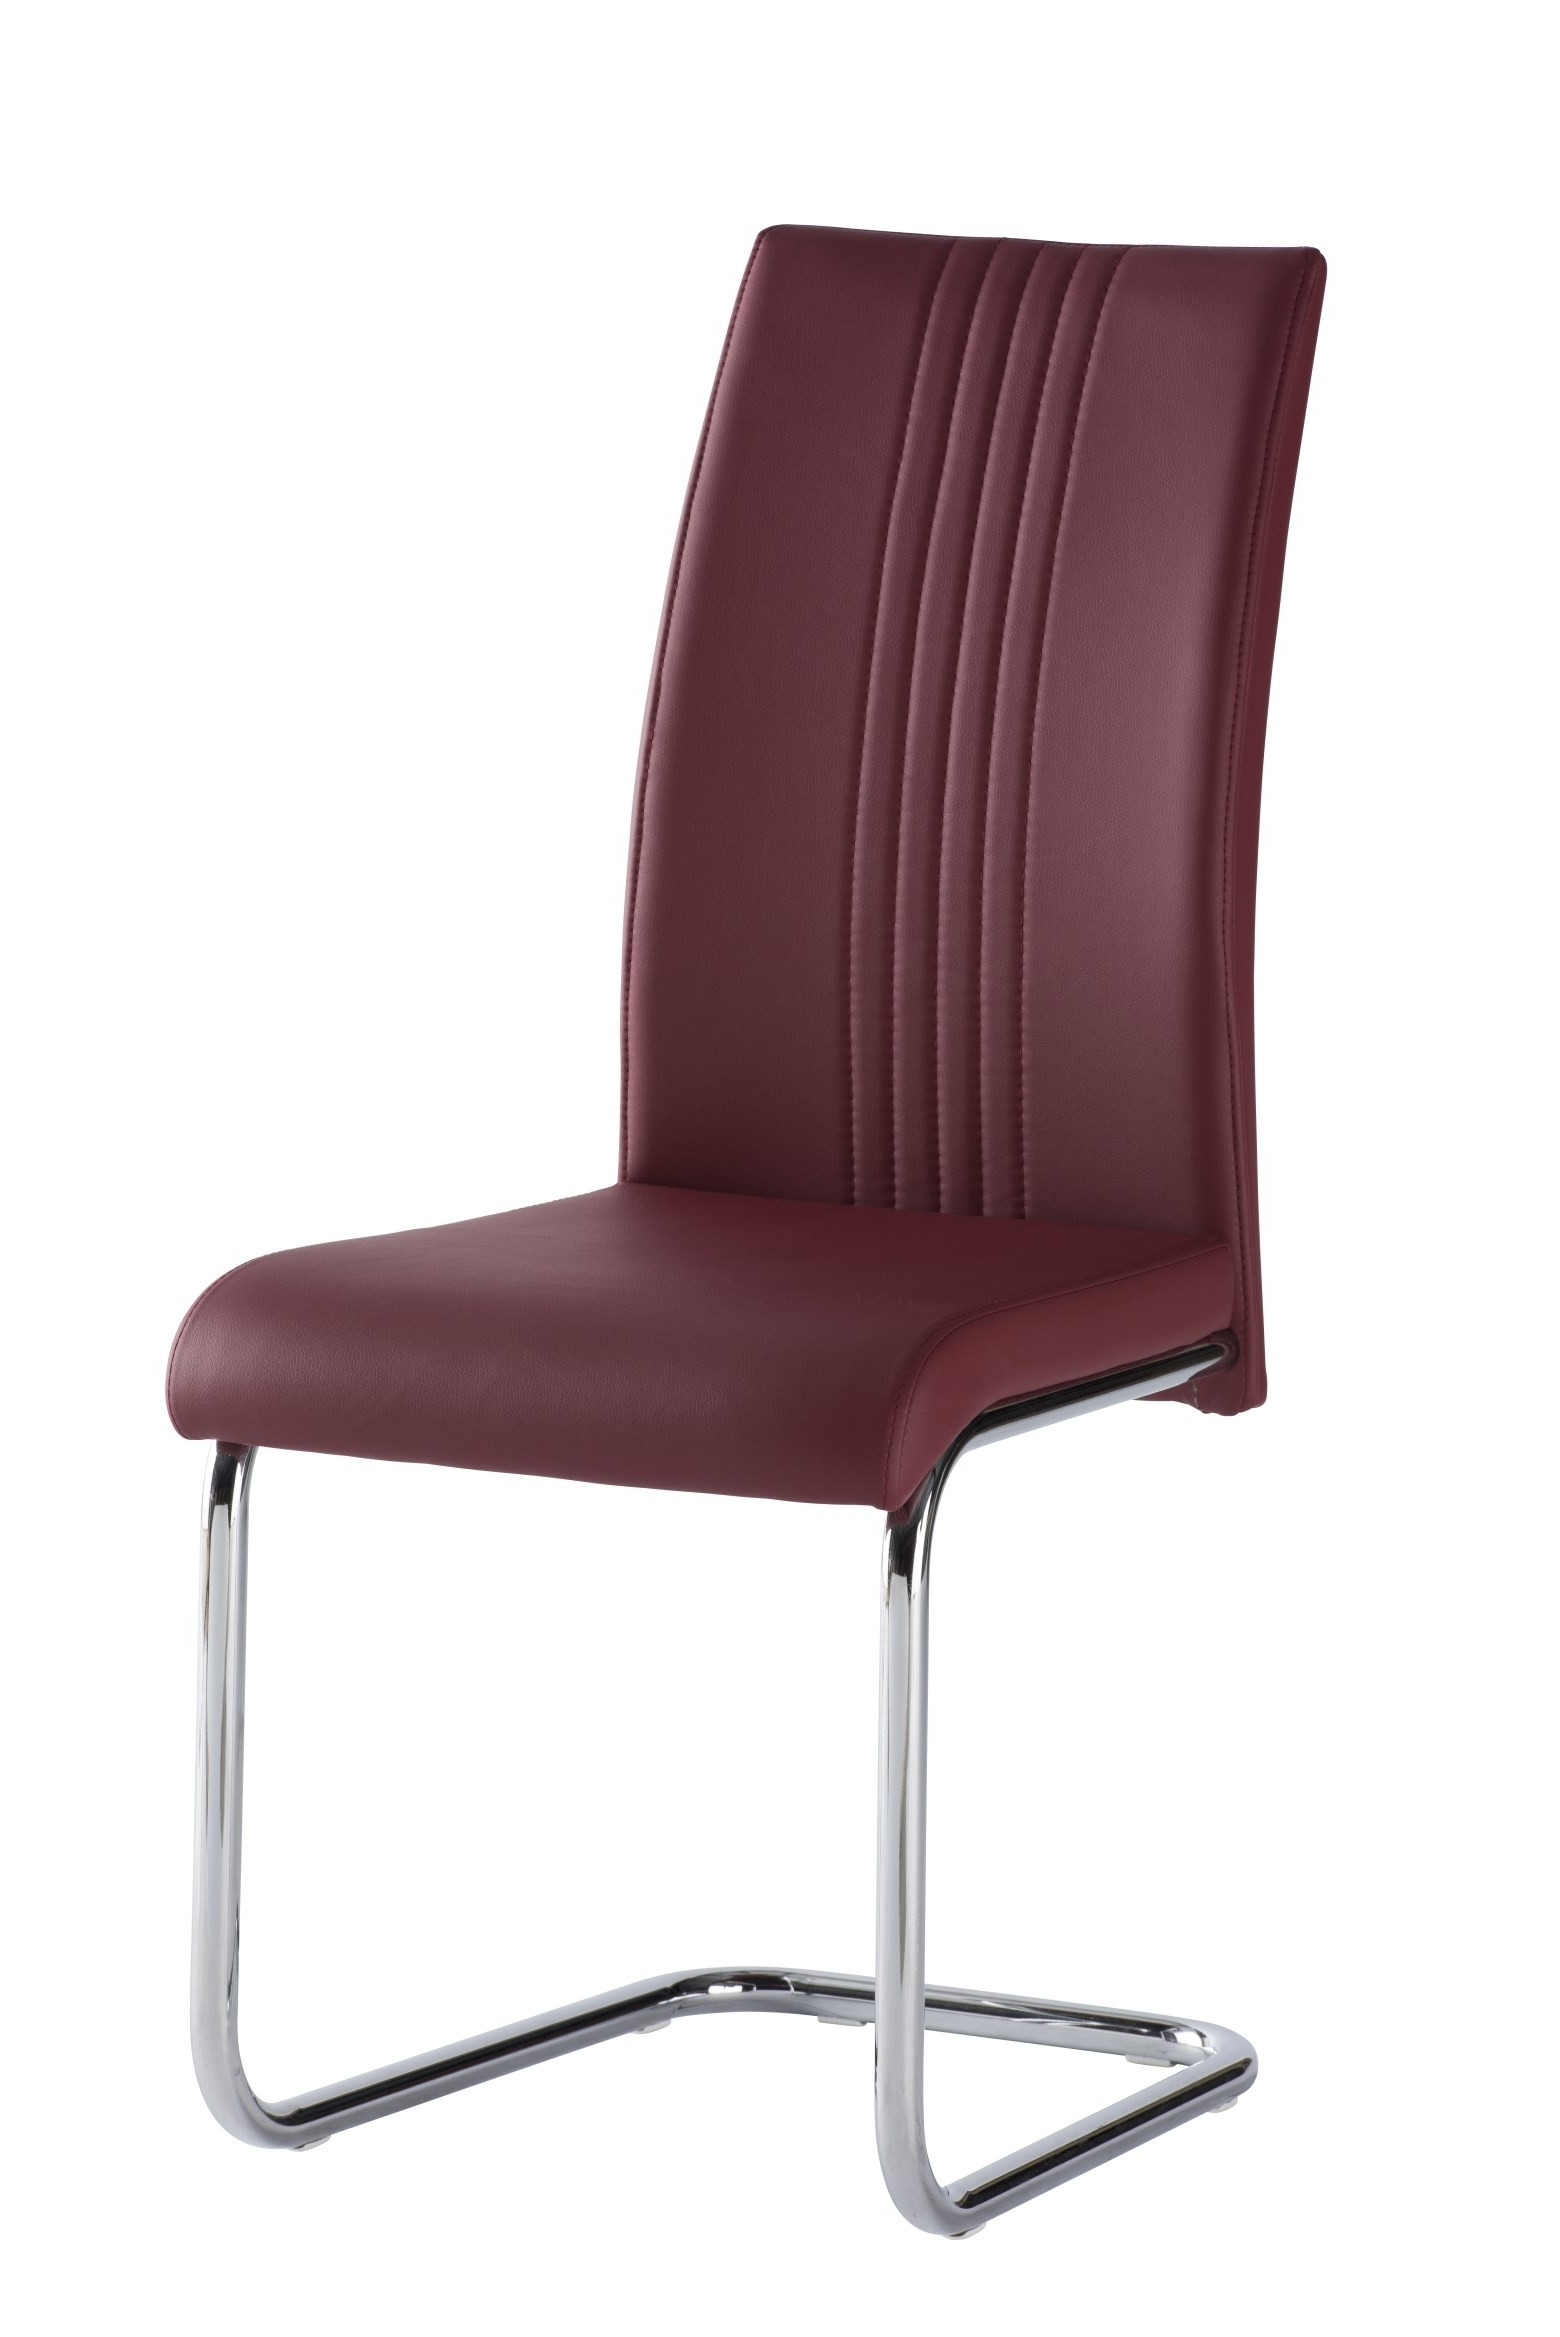 Red Leather Dining Chairs Pertaining To Most Recently Released Shop For Red Leather Dining Chairs With Cantilever Online Now (View 21 of 25)